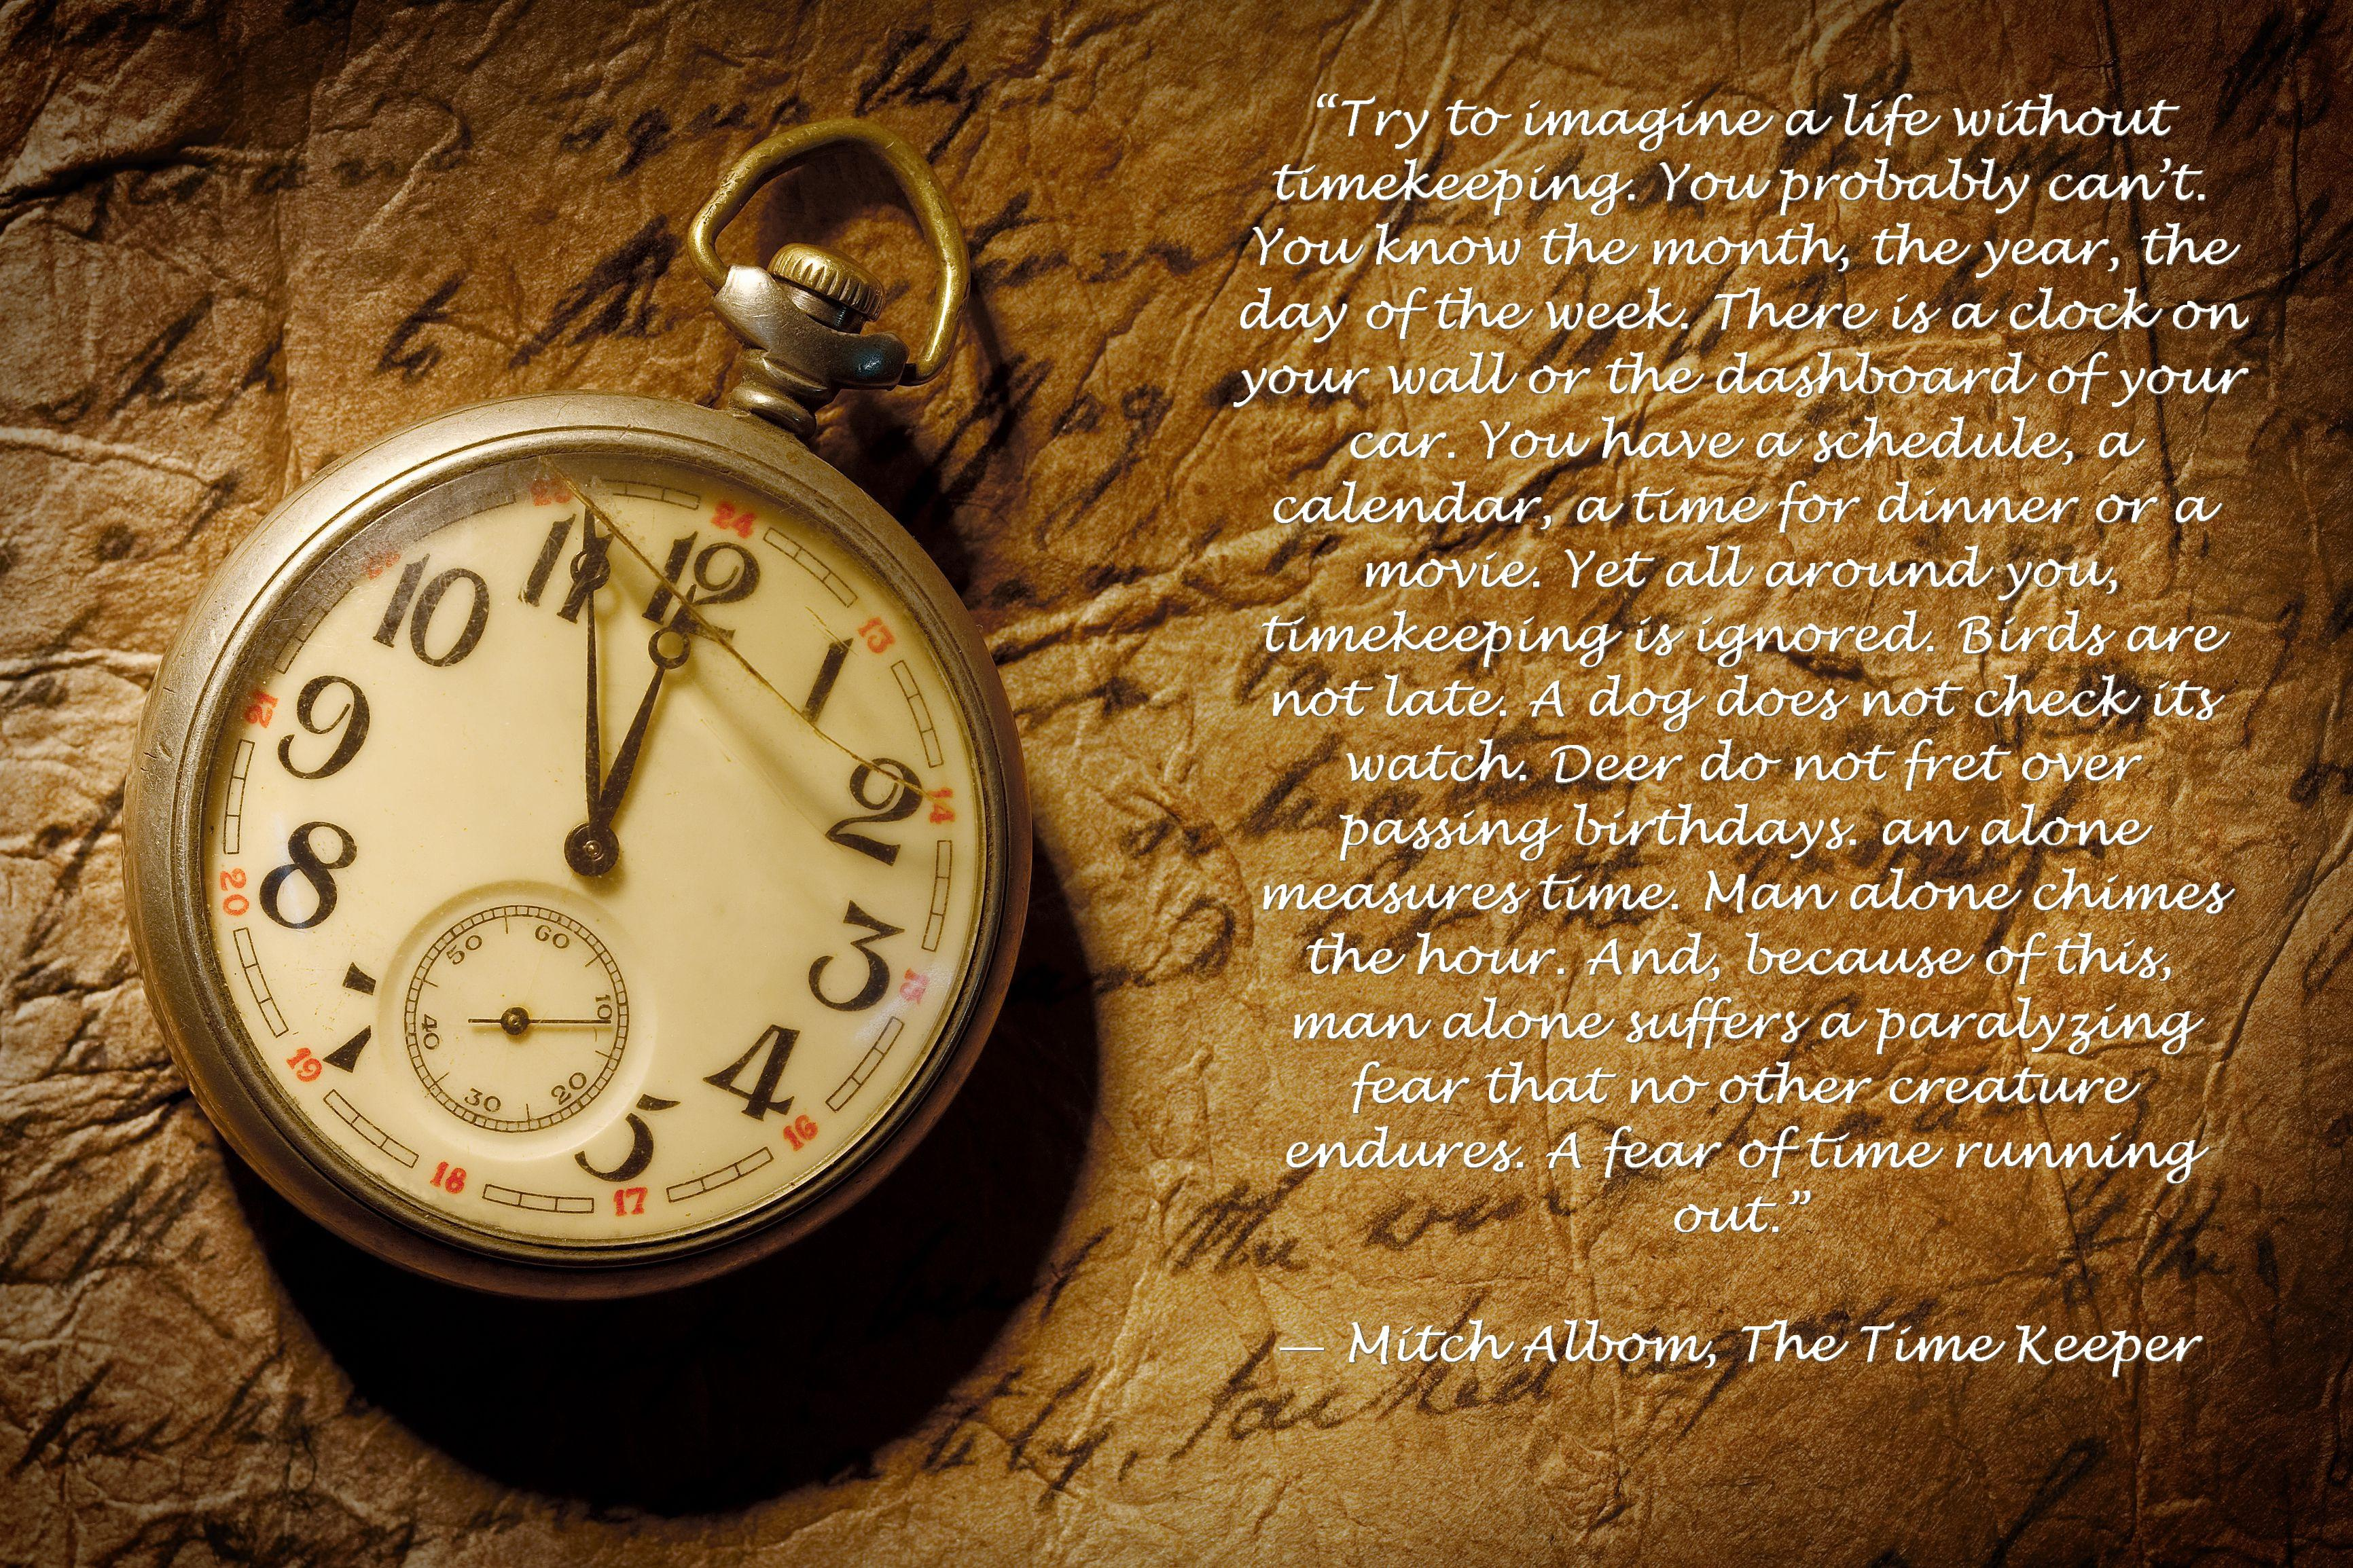 """""""Try to imagine a life without timekeeping. You probably can't. You know the month, the year, the day of the week. There is a clock on your wall or the dashboard of your car. You have a schedule, a calendar, a time for dinner or a movie…. ― Mitch Albom, The Time Keeper [3464 x 2309]"""